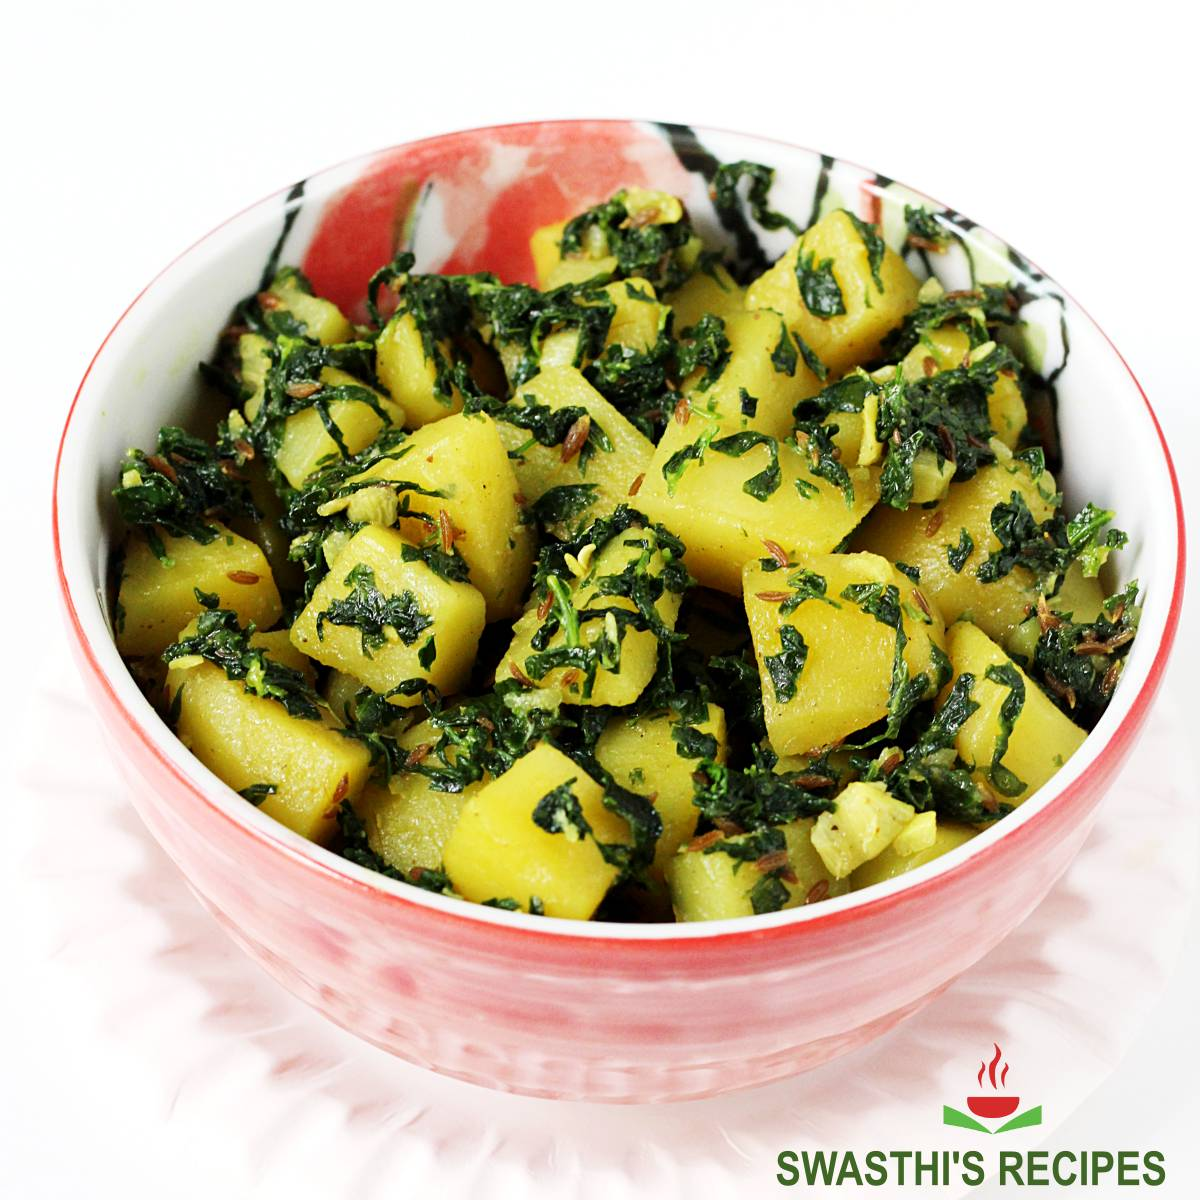 aloo methi recipe made with potatoes and fenugreek leaves